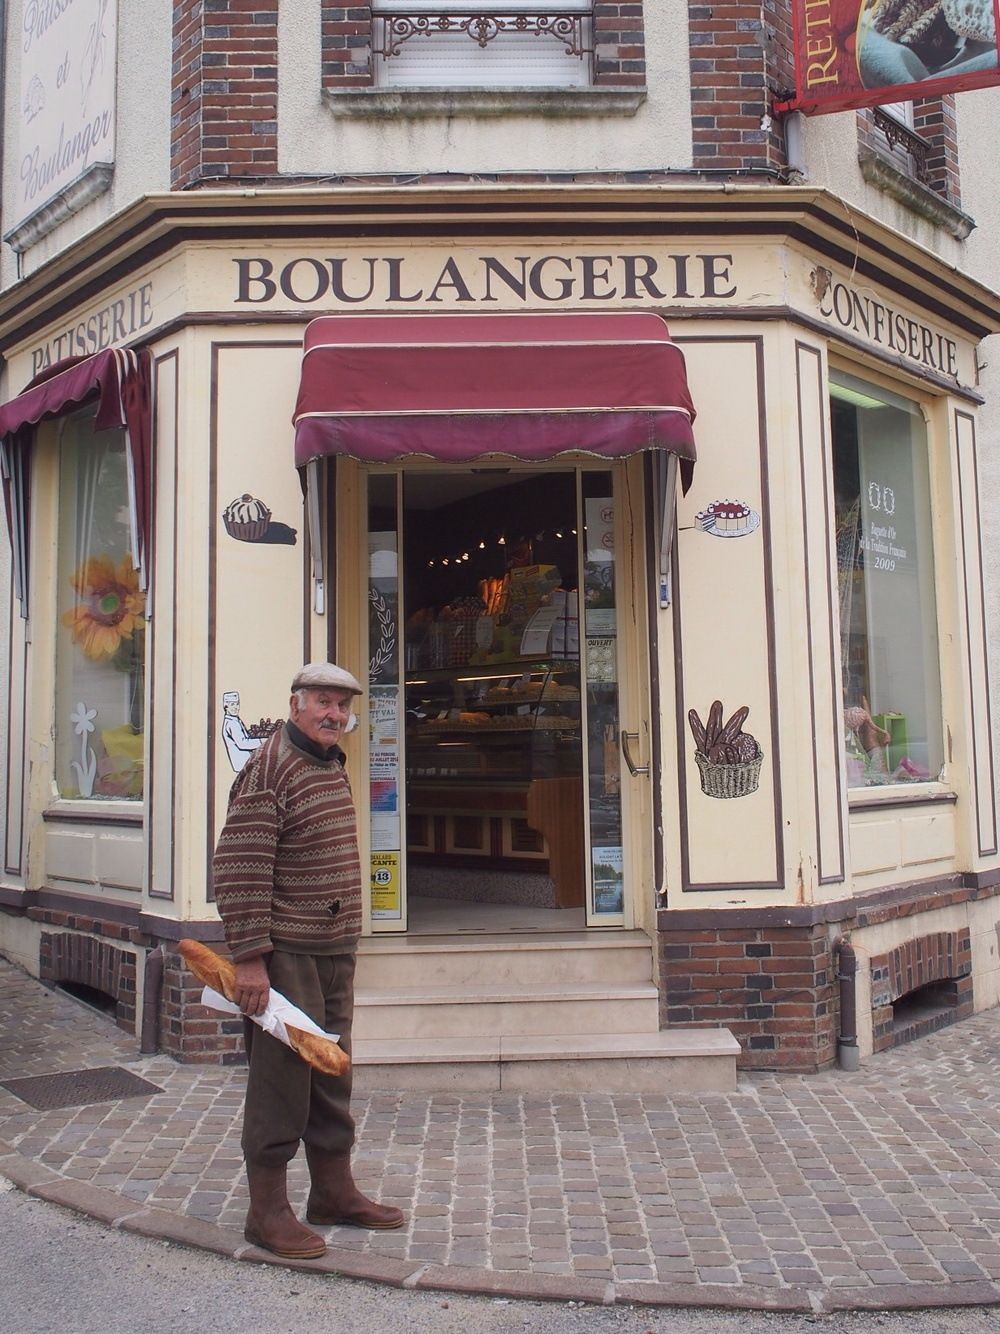 ...with a real Frenchman and French bread stick, in front of French bakery .... In France...impressive!!